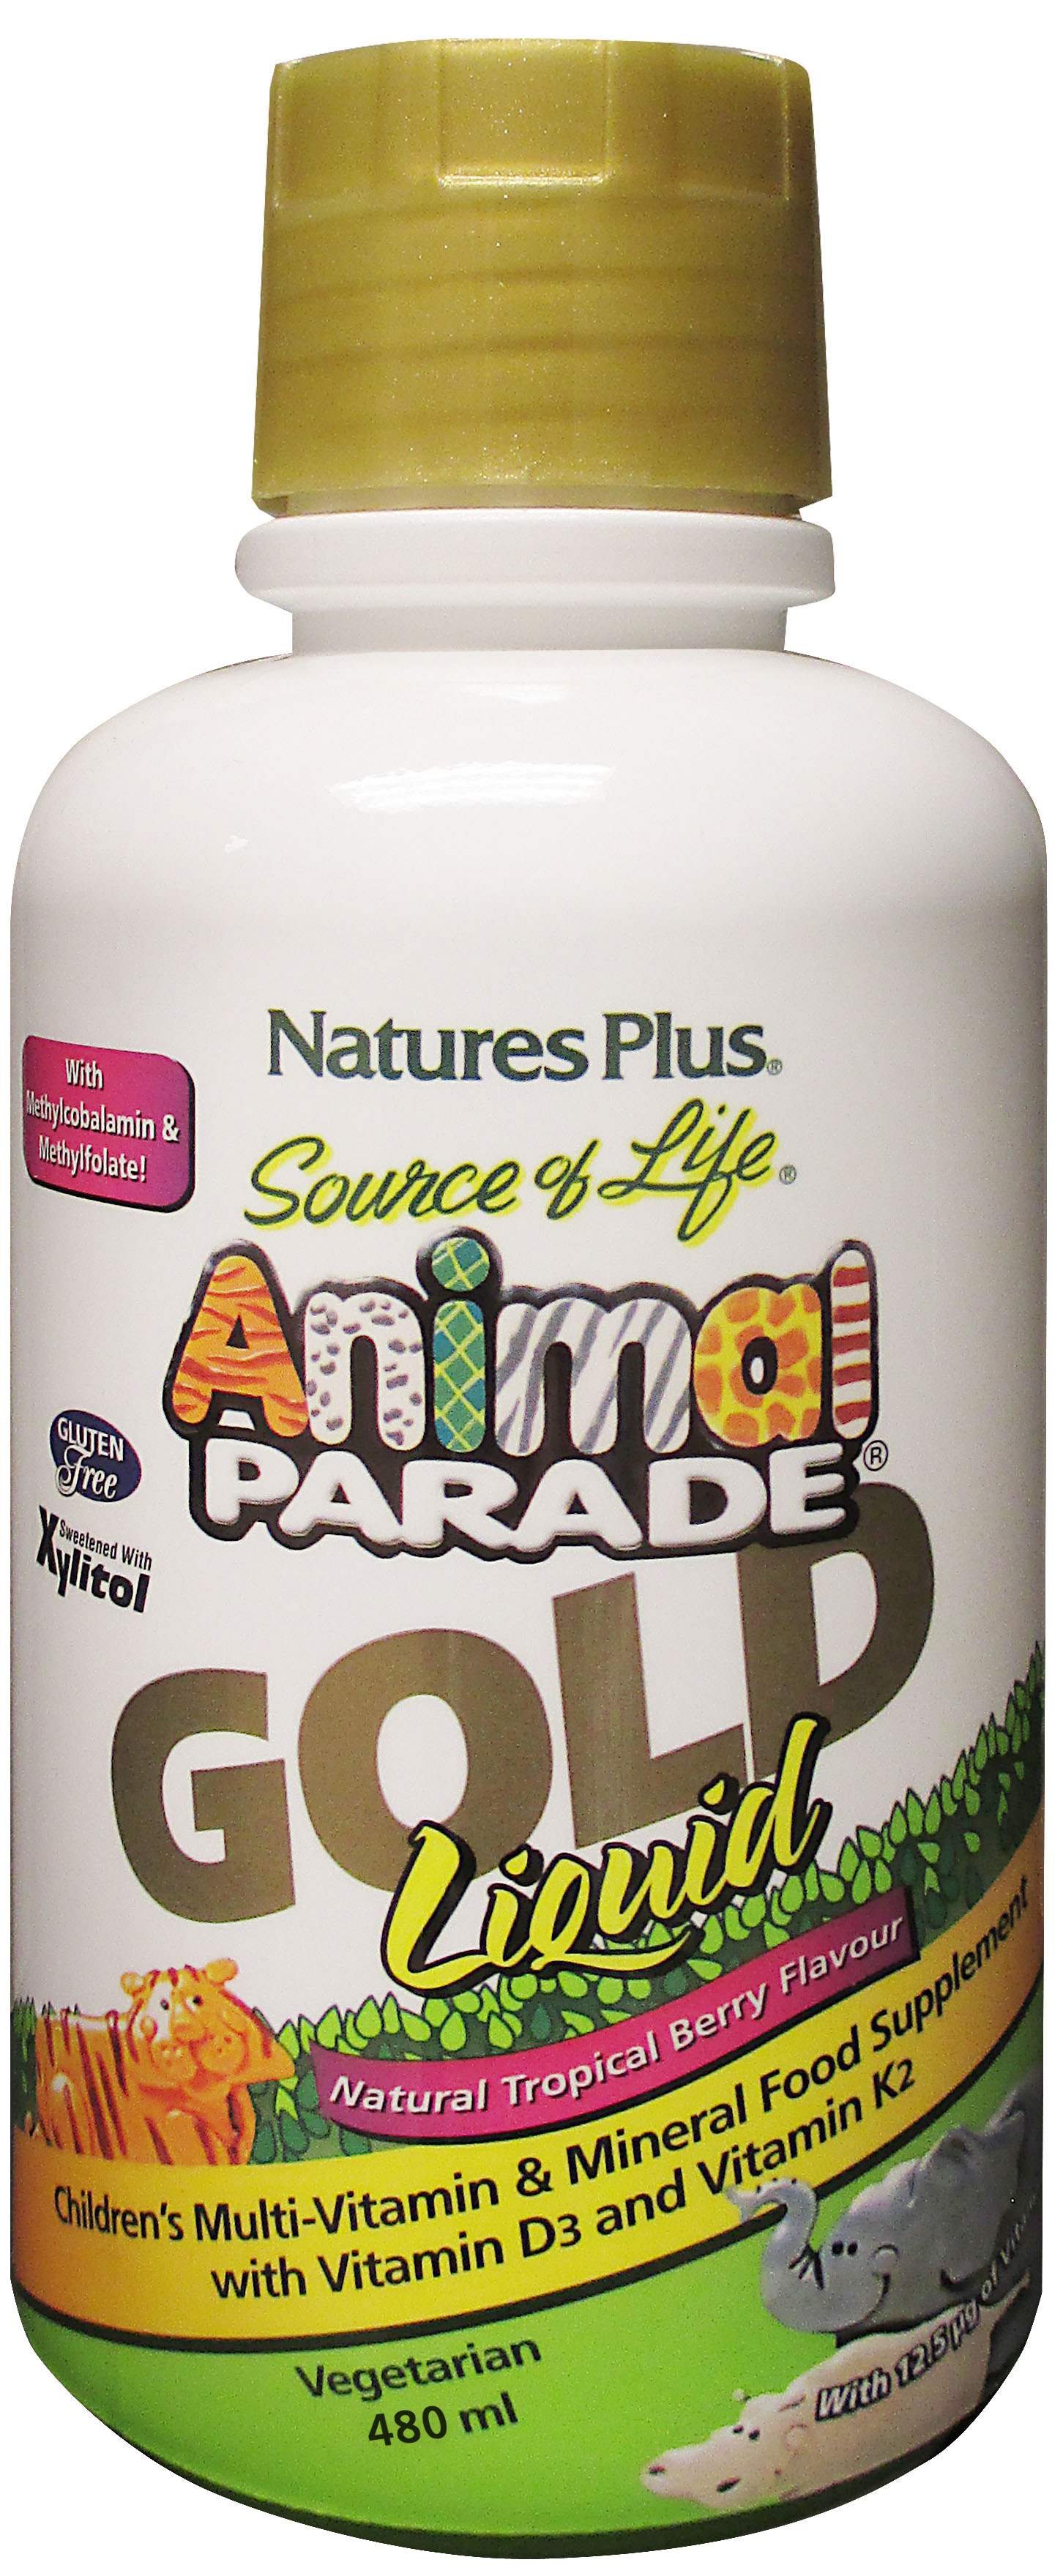 Source of Life Animal Parade GOLD Liquid Natural Tropical Berry Flavour 480ml